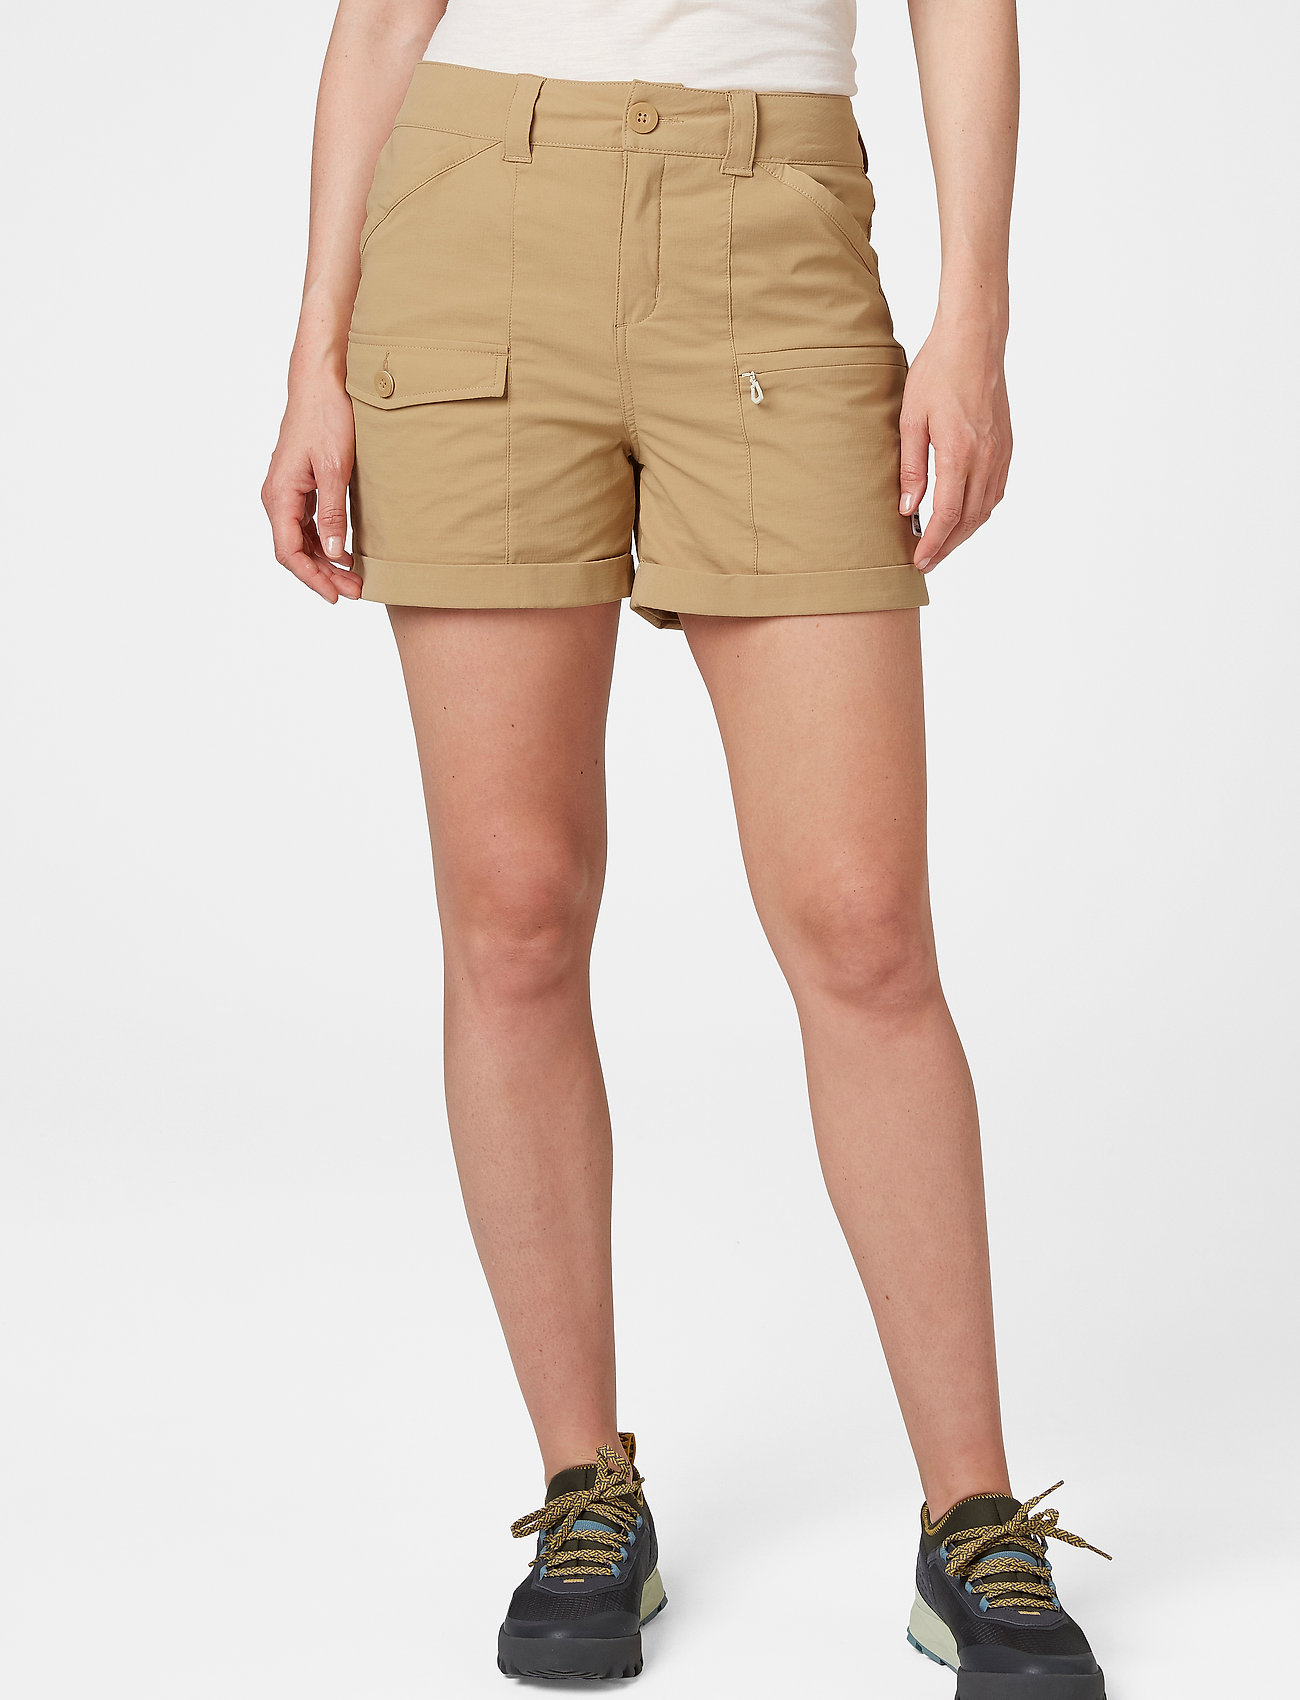 Helly Hansen - W MARIDALEN SHORTS - wandel korte broek - iced coffee - 0